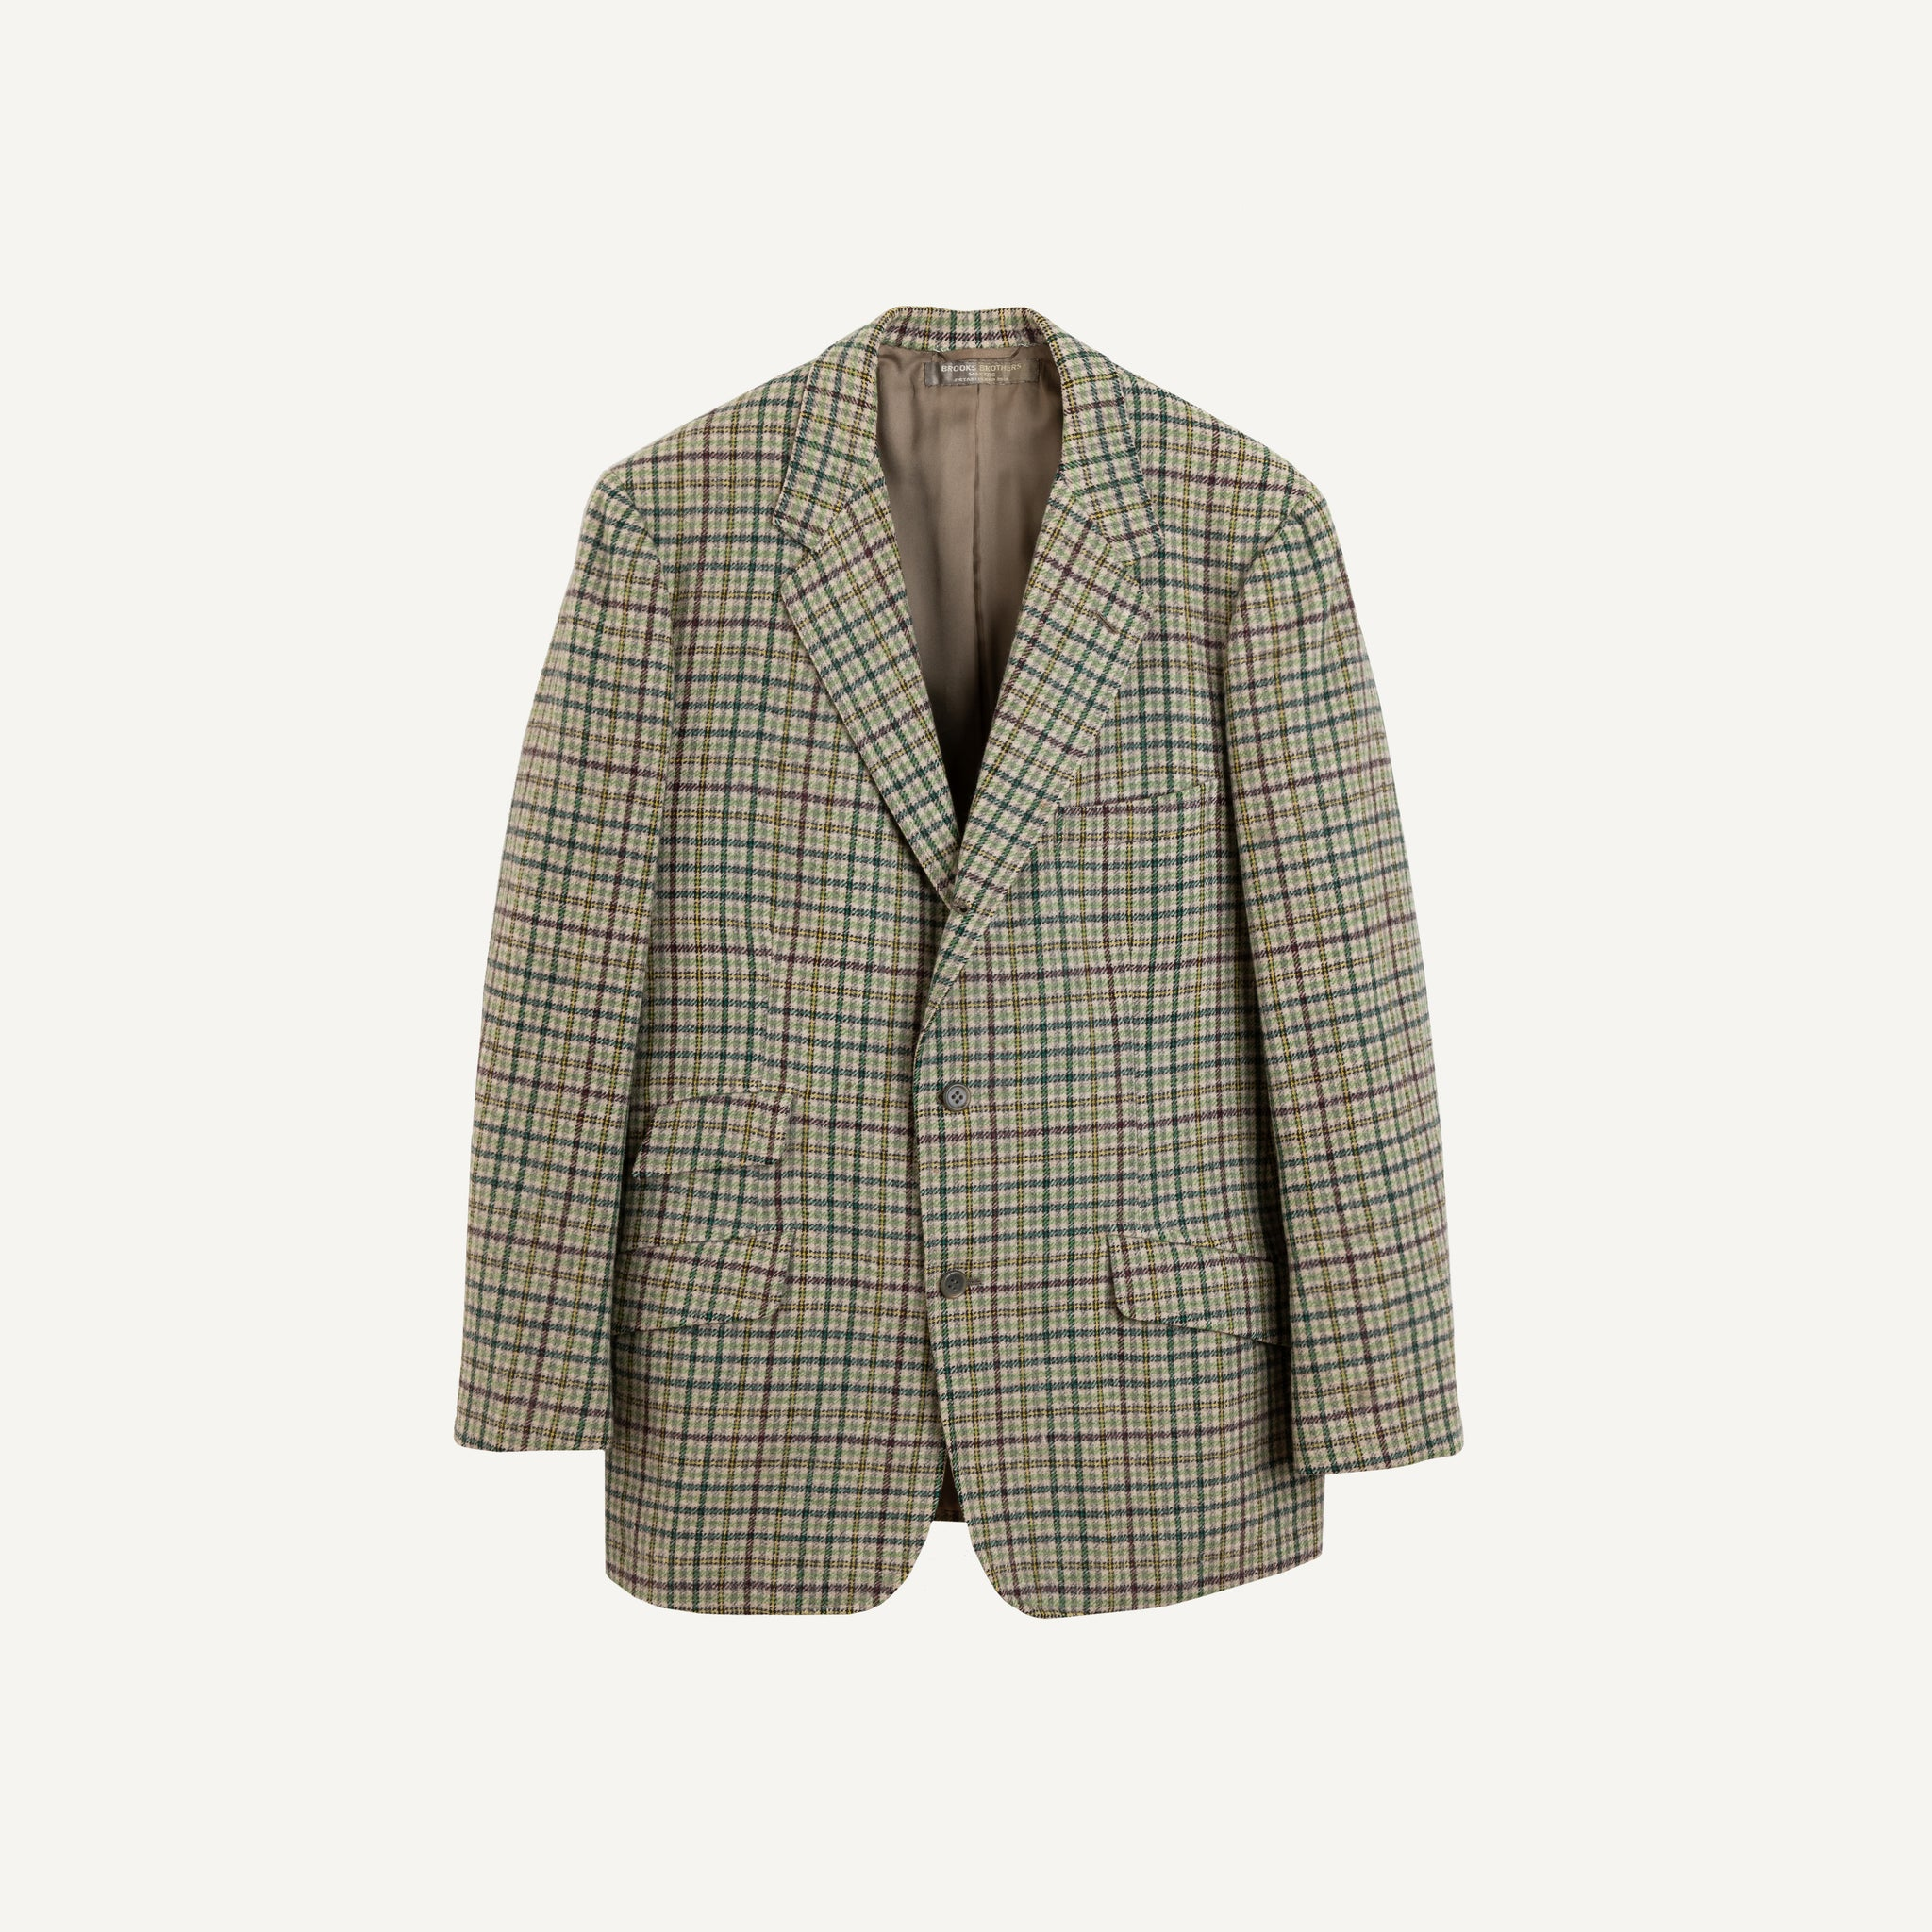 VINTAGE BROOKS BROTHERS + PLAIN GOODS BLAZER